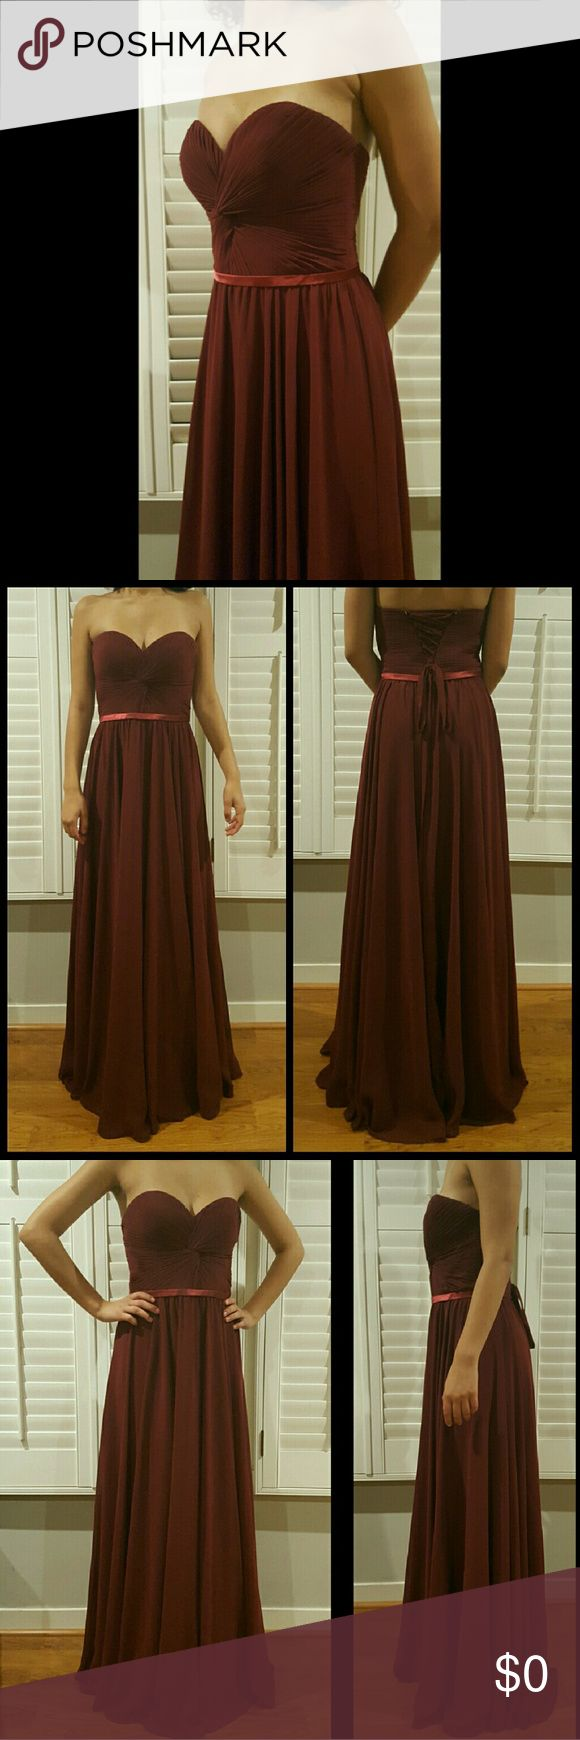 *NOT FOR SALE*DO NOT BUY* (PHOTOS ONLY) *DO NOT BUY* *THIS LISTING IS NOT FOR SALE* (This listing is solely for the purpose of providing additional photos to prospective buyers) Dresses Prom